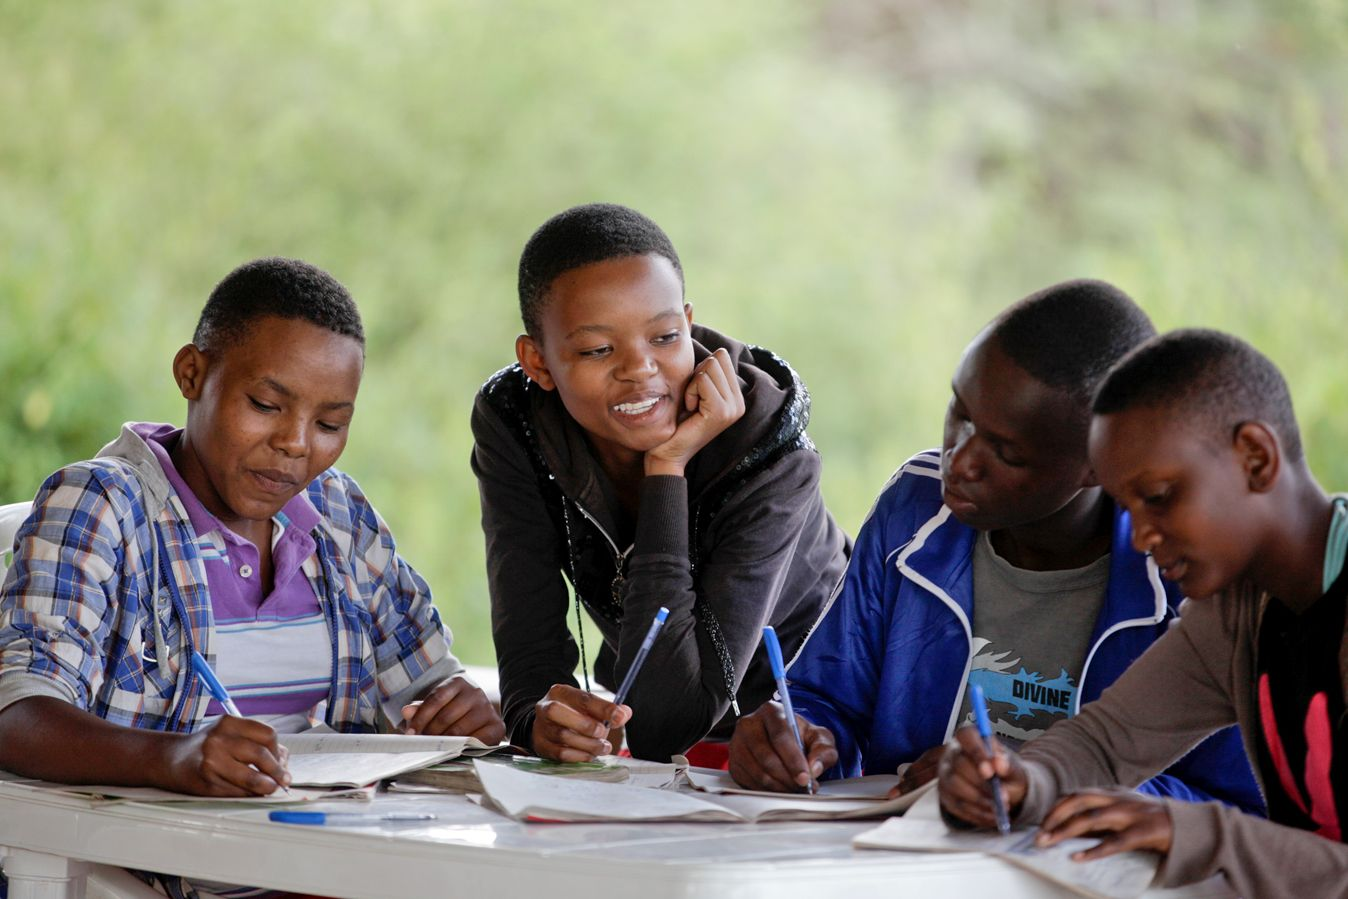 A group of Noloholo Environmental Scholars study together.